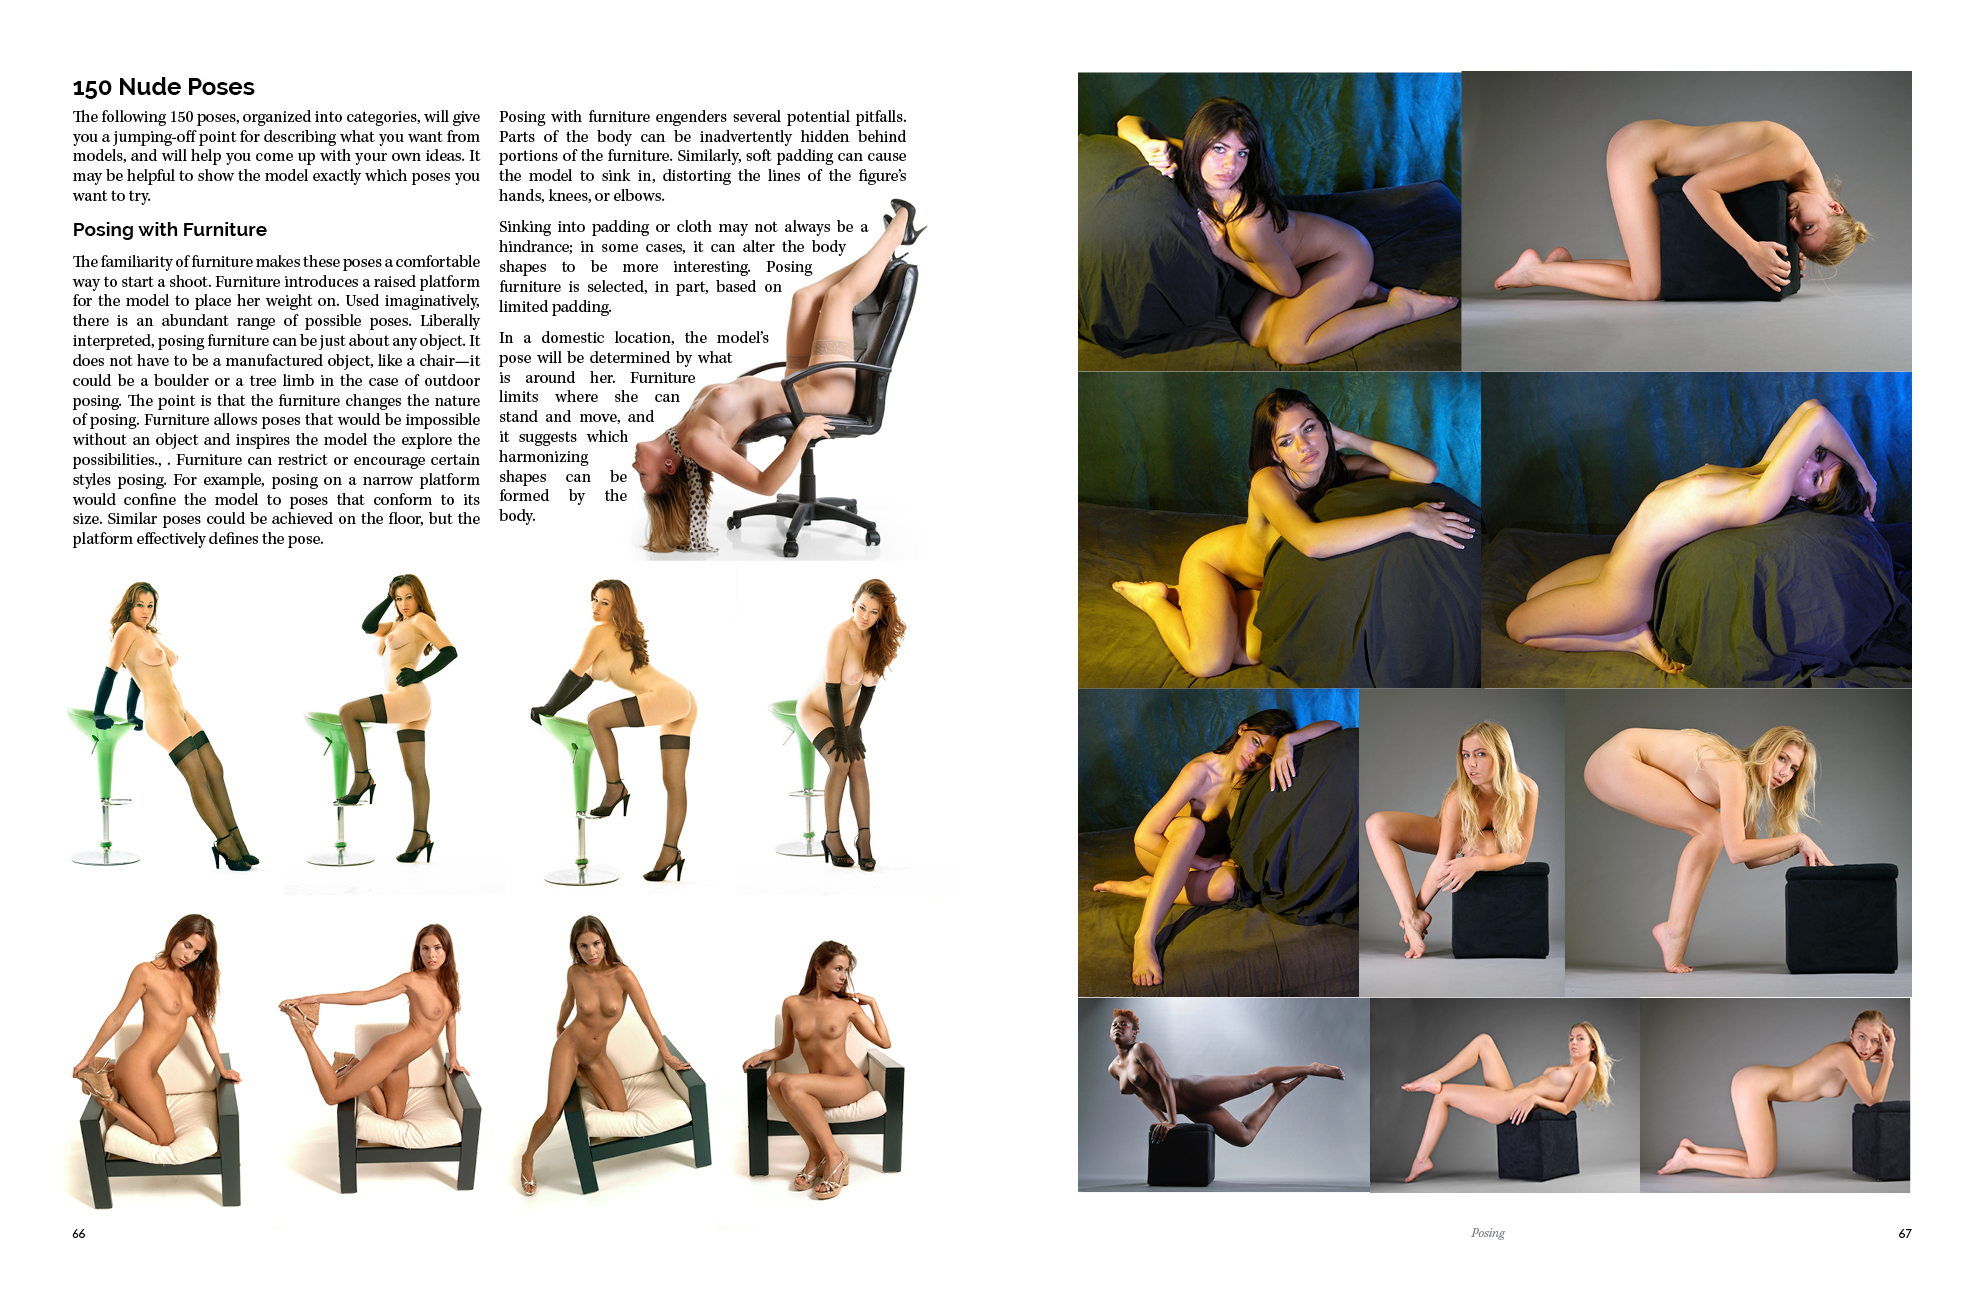 Learn nude photography instructional book posing guide